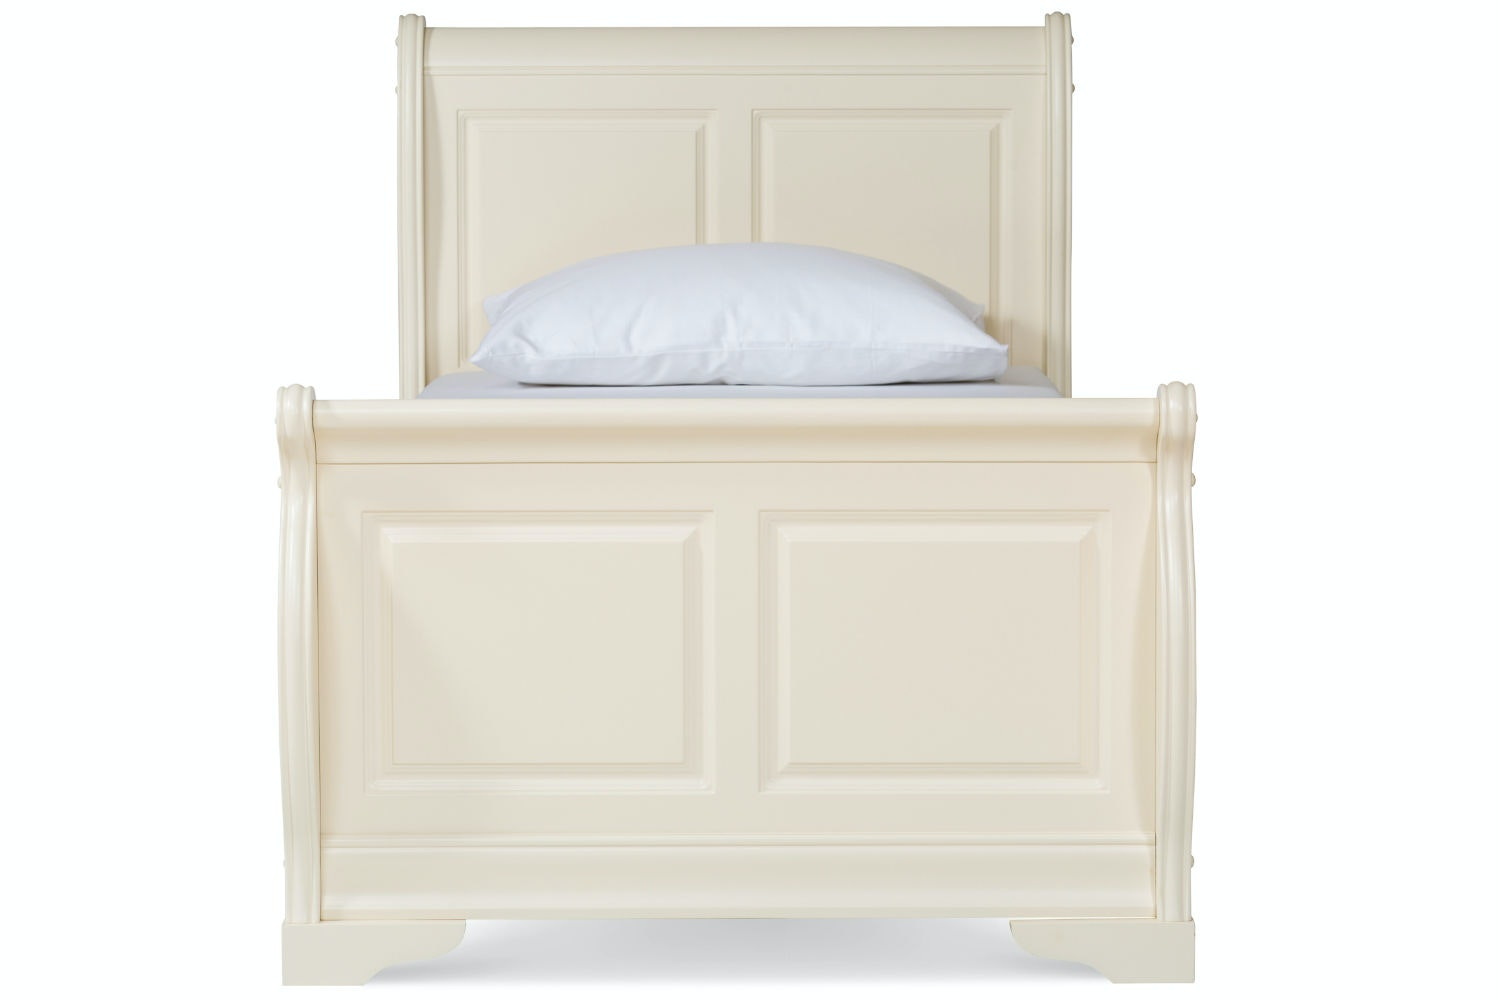 Chardonnay Single Bed Frame | 3ft | Cream